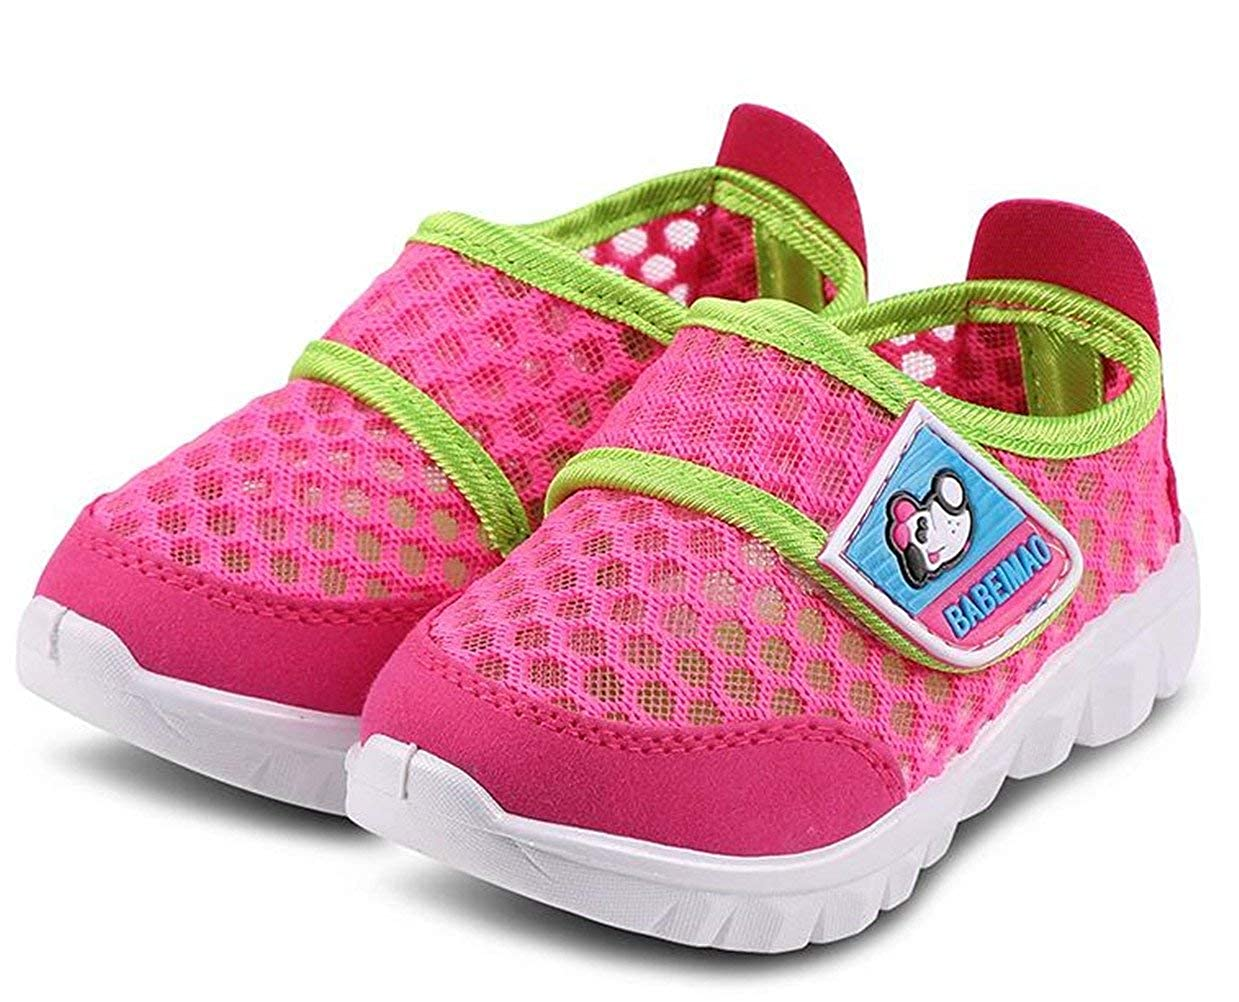 PRETTYHOMEL Babys Boys Girls Breathable Strap Light Weight Casual Sneakers Running Shoes